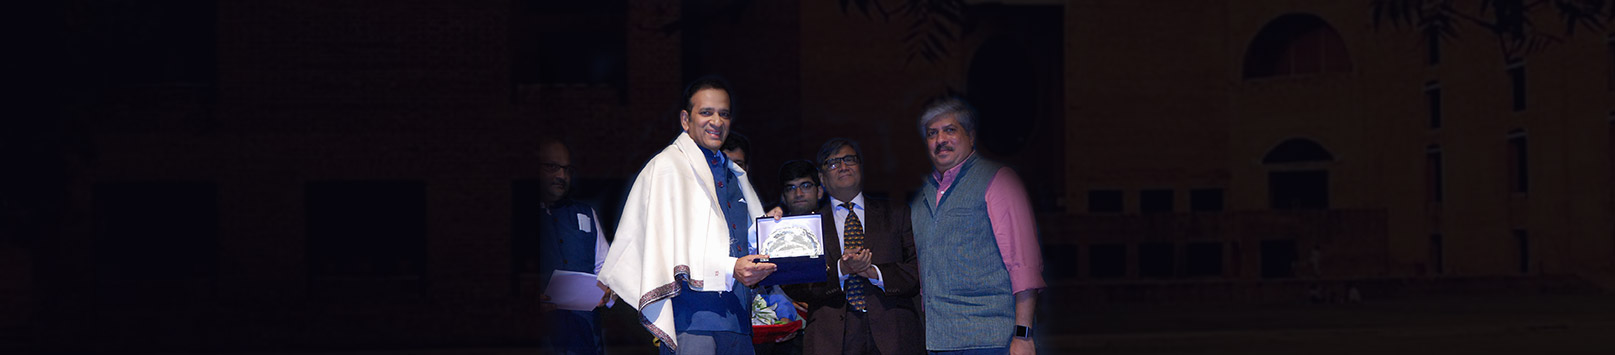 Ajay Bisaria receiving his Distinguished Alumnus Award 2018 from Shrikrishna Kulkarni, Chairperson IIM Calcutta